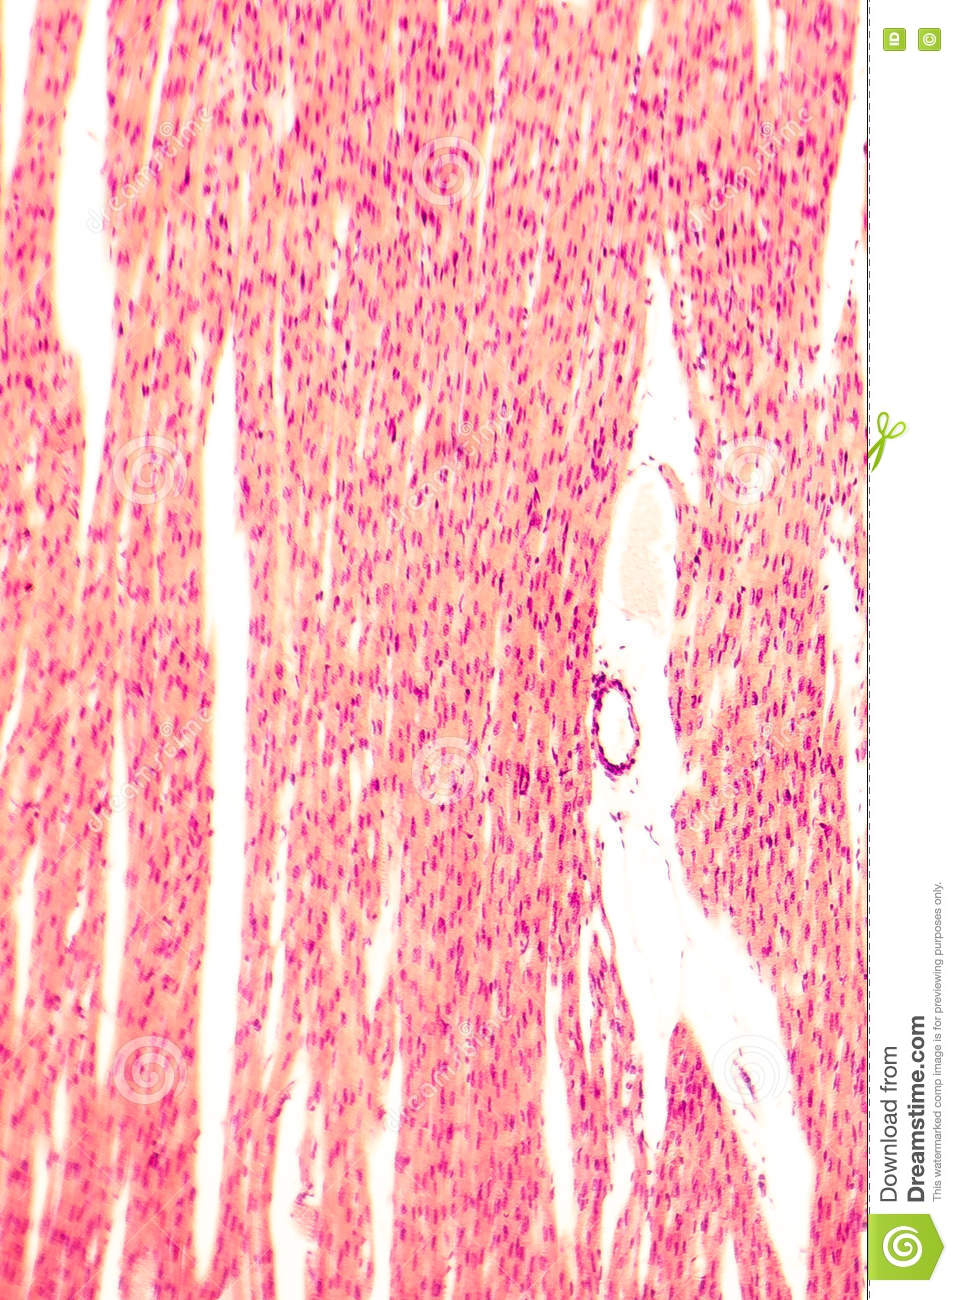 Heart Muscle Light Micrograph Stock Photo Image Of Microscopic